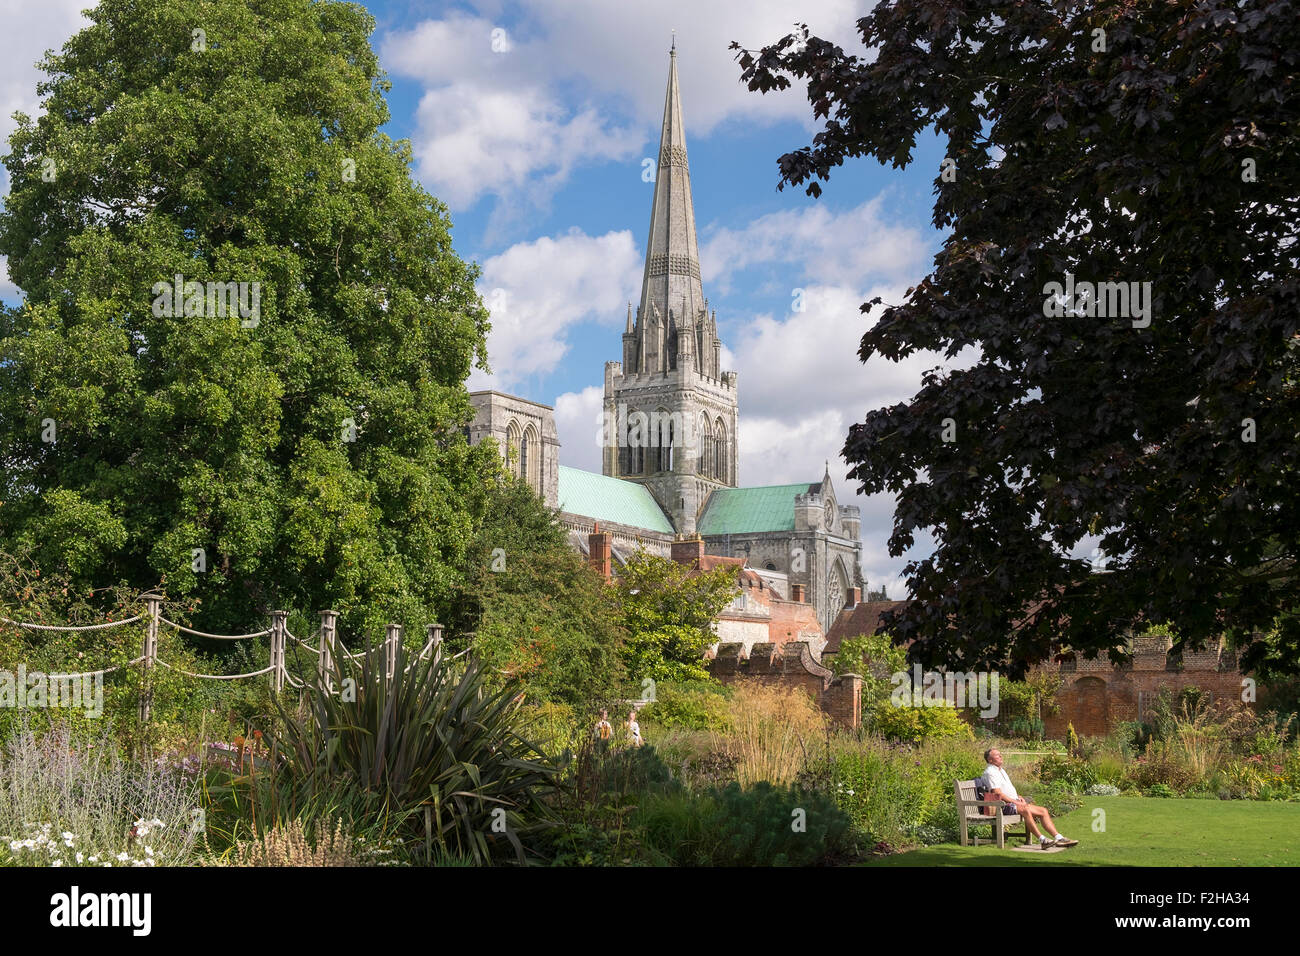 chichester-west-sussex-uk-saturday-19th-